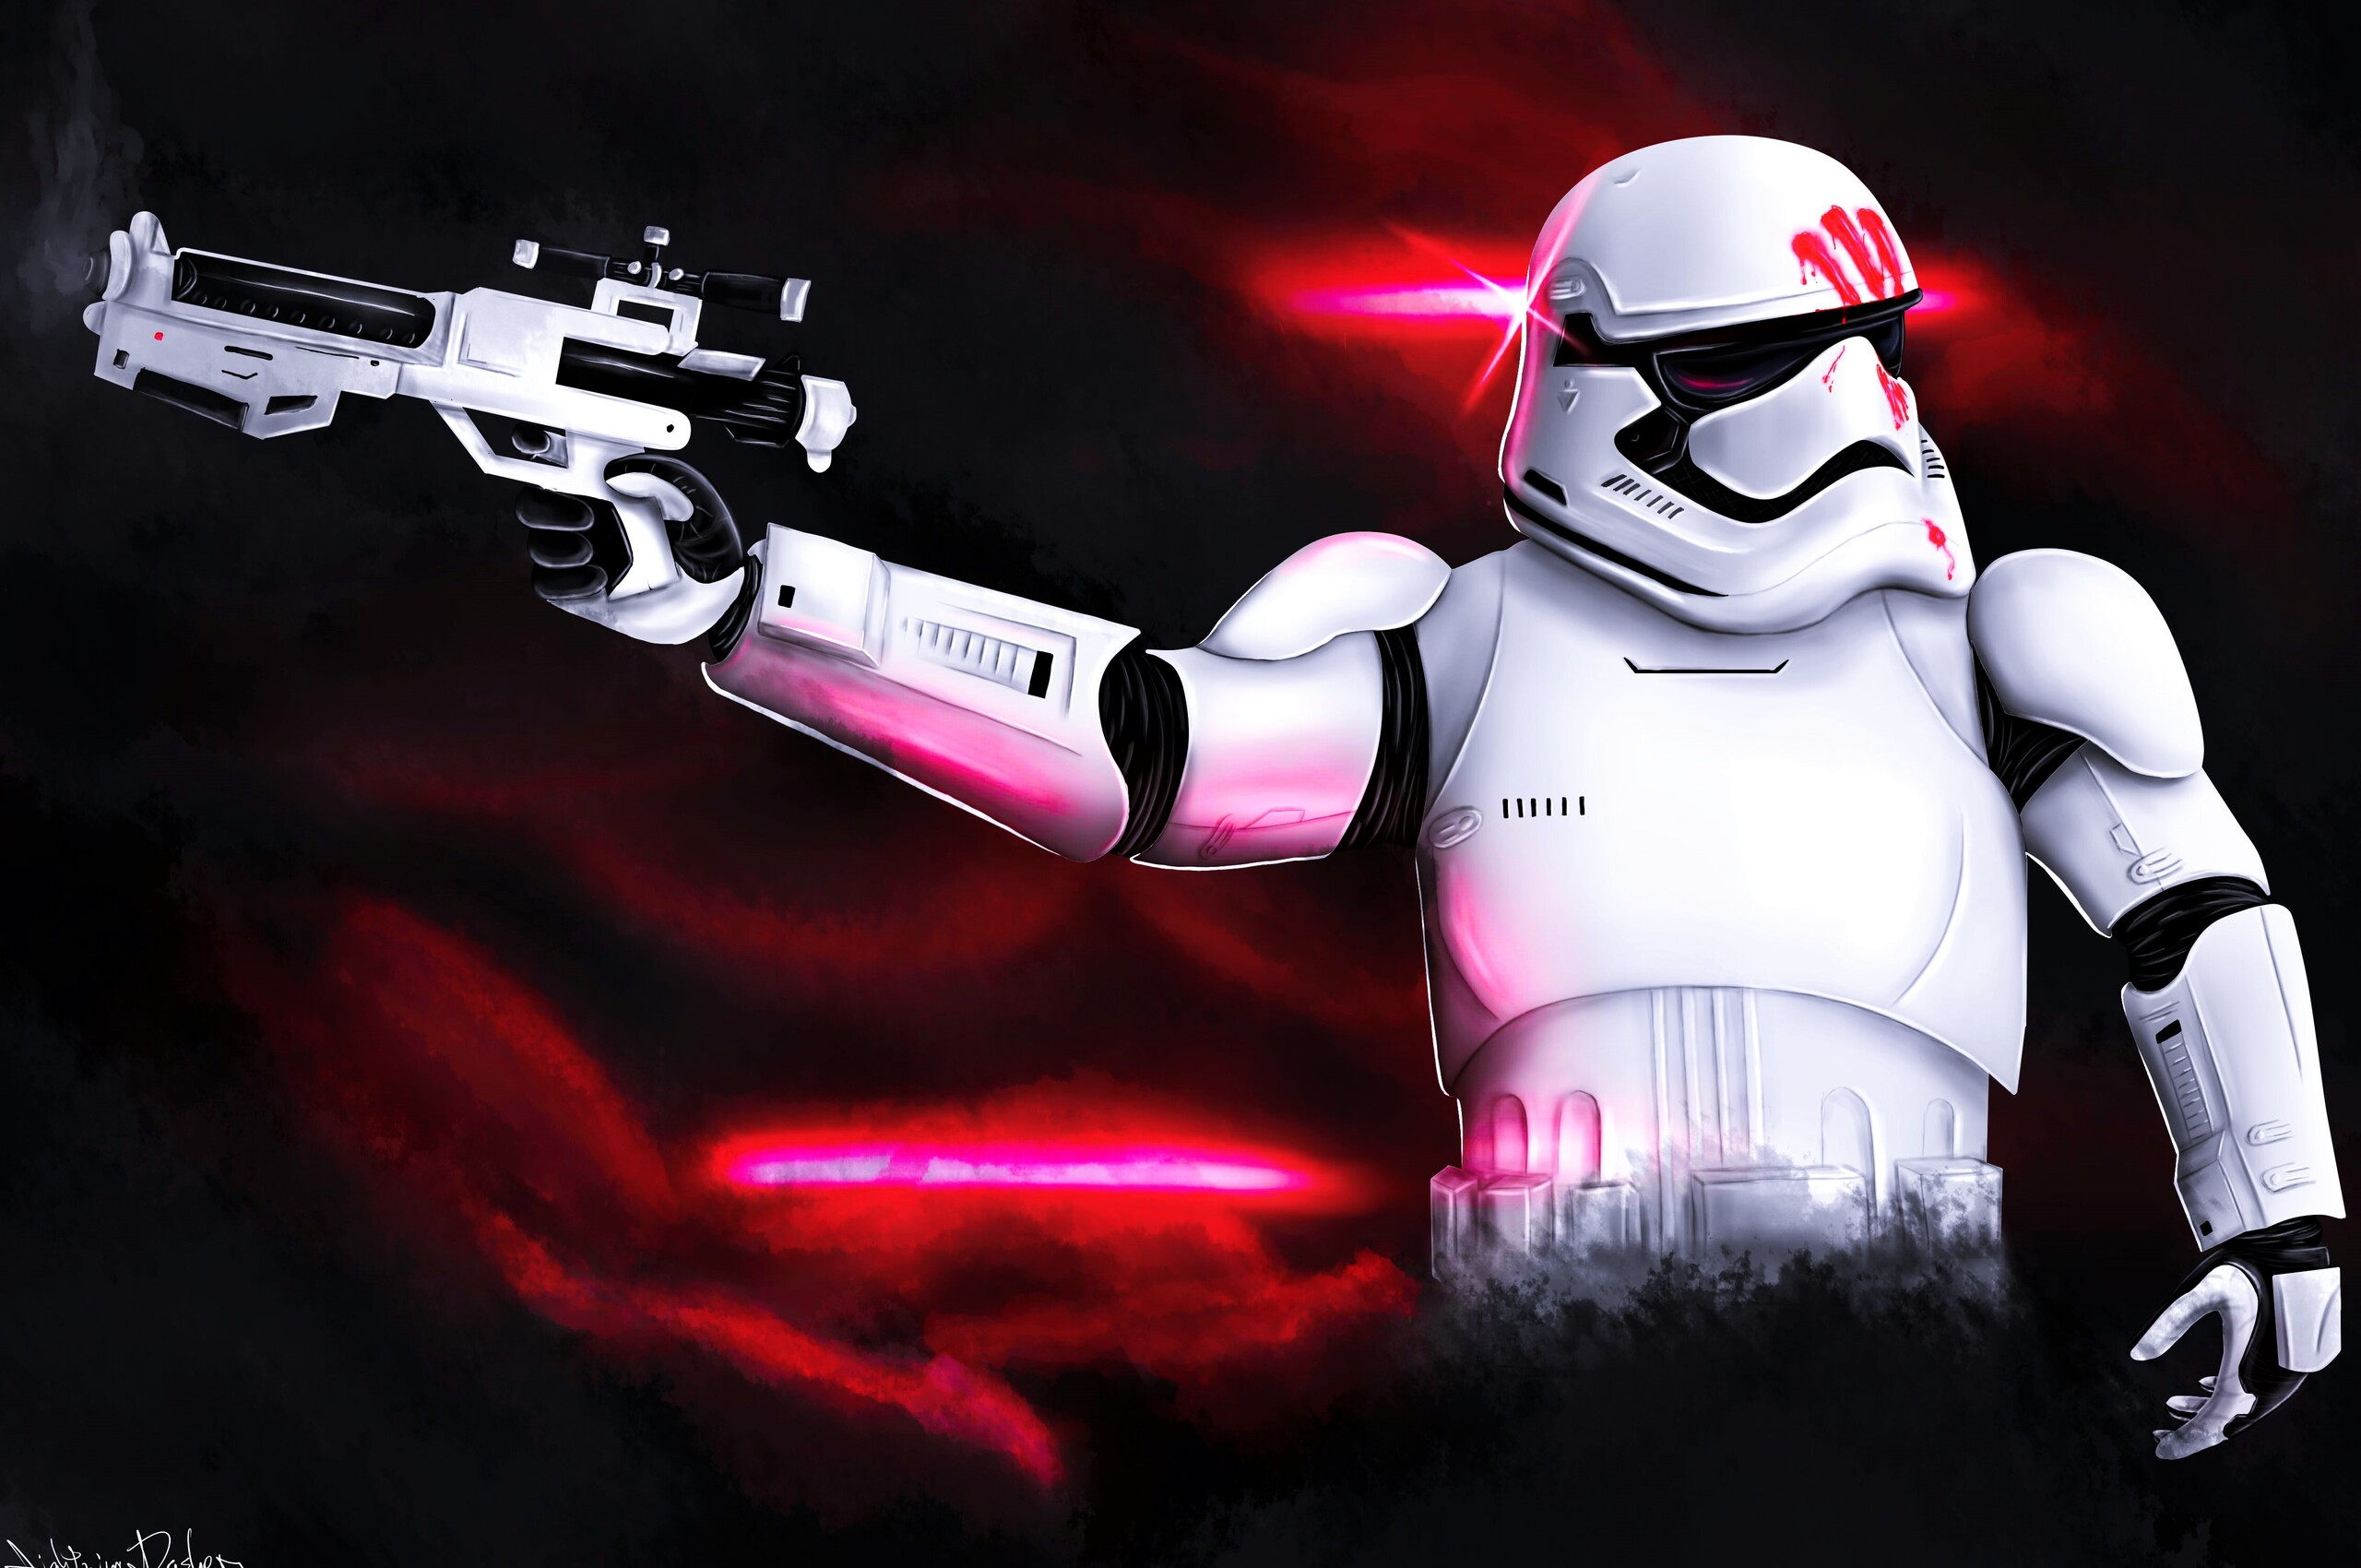 clone-trooper-star-wars-4k-yj.jpg